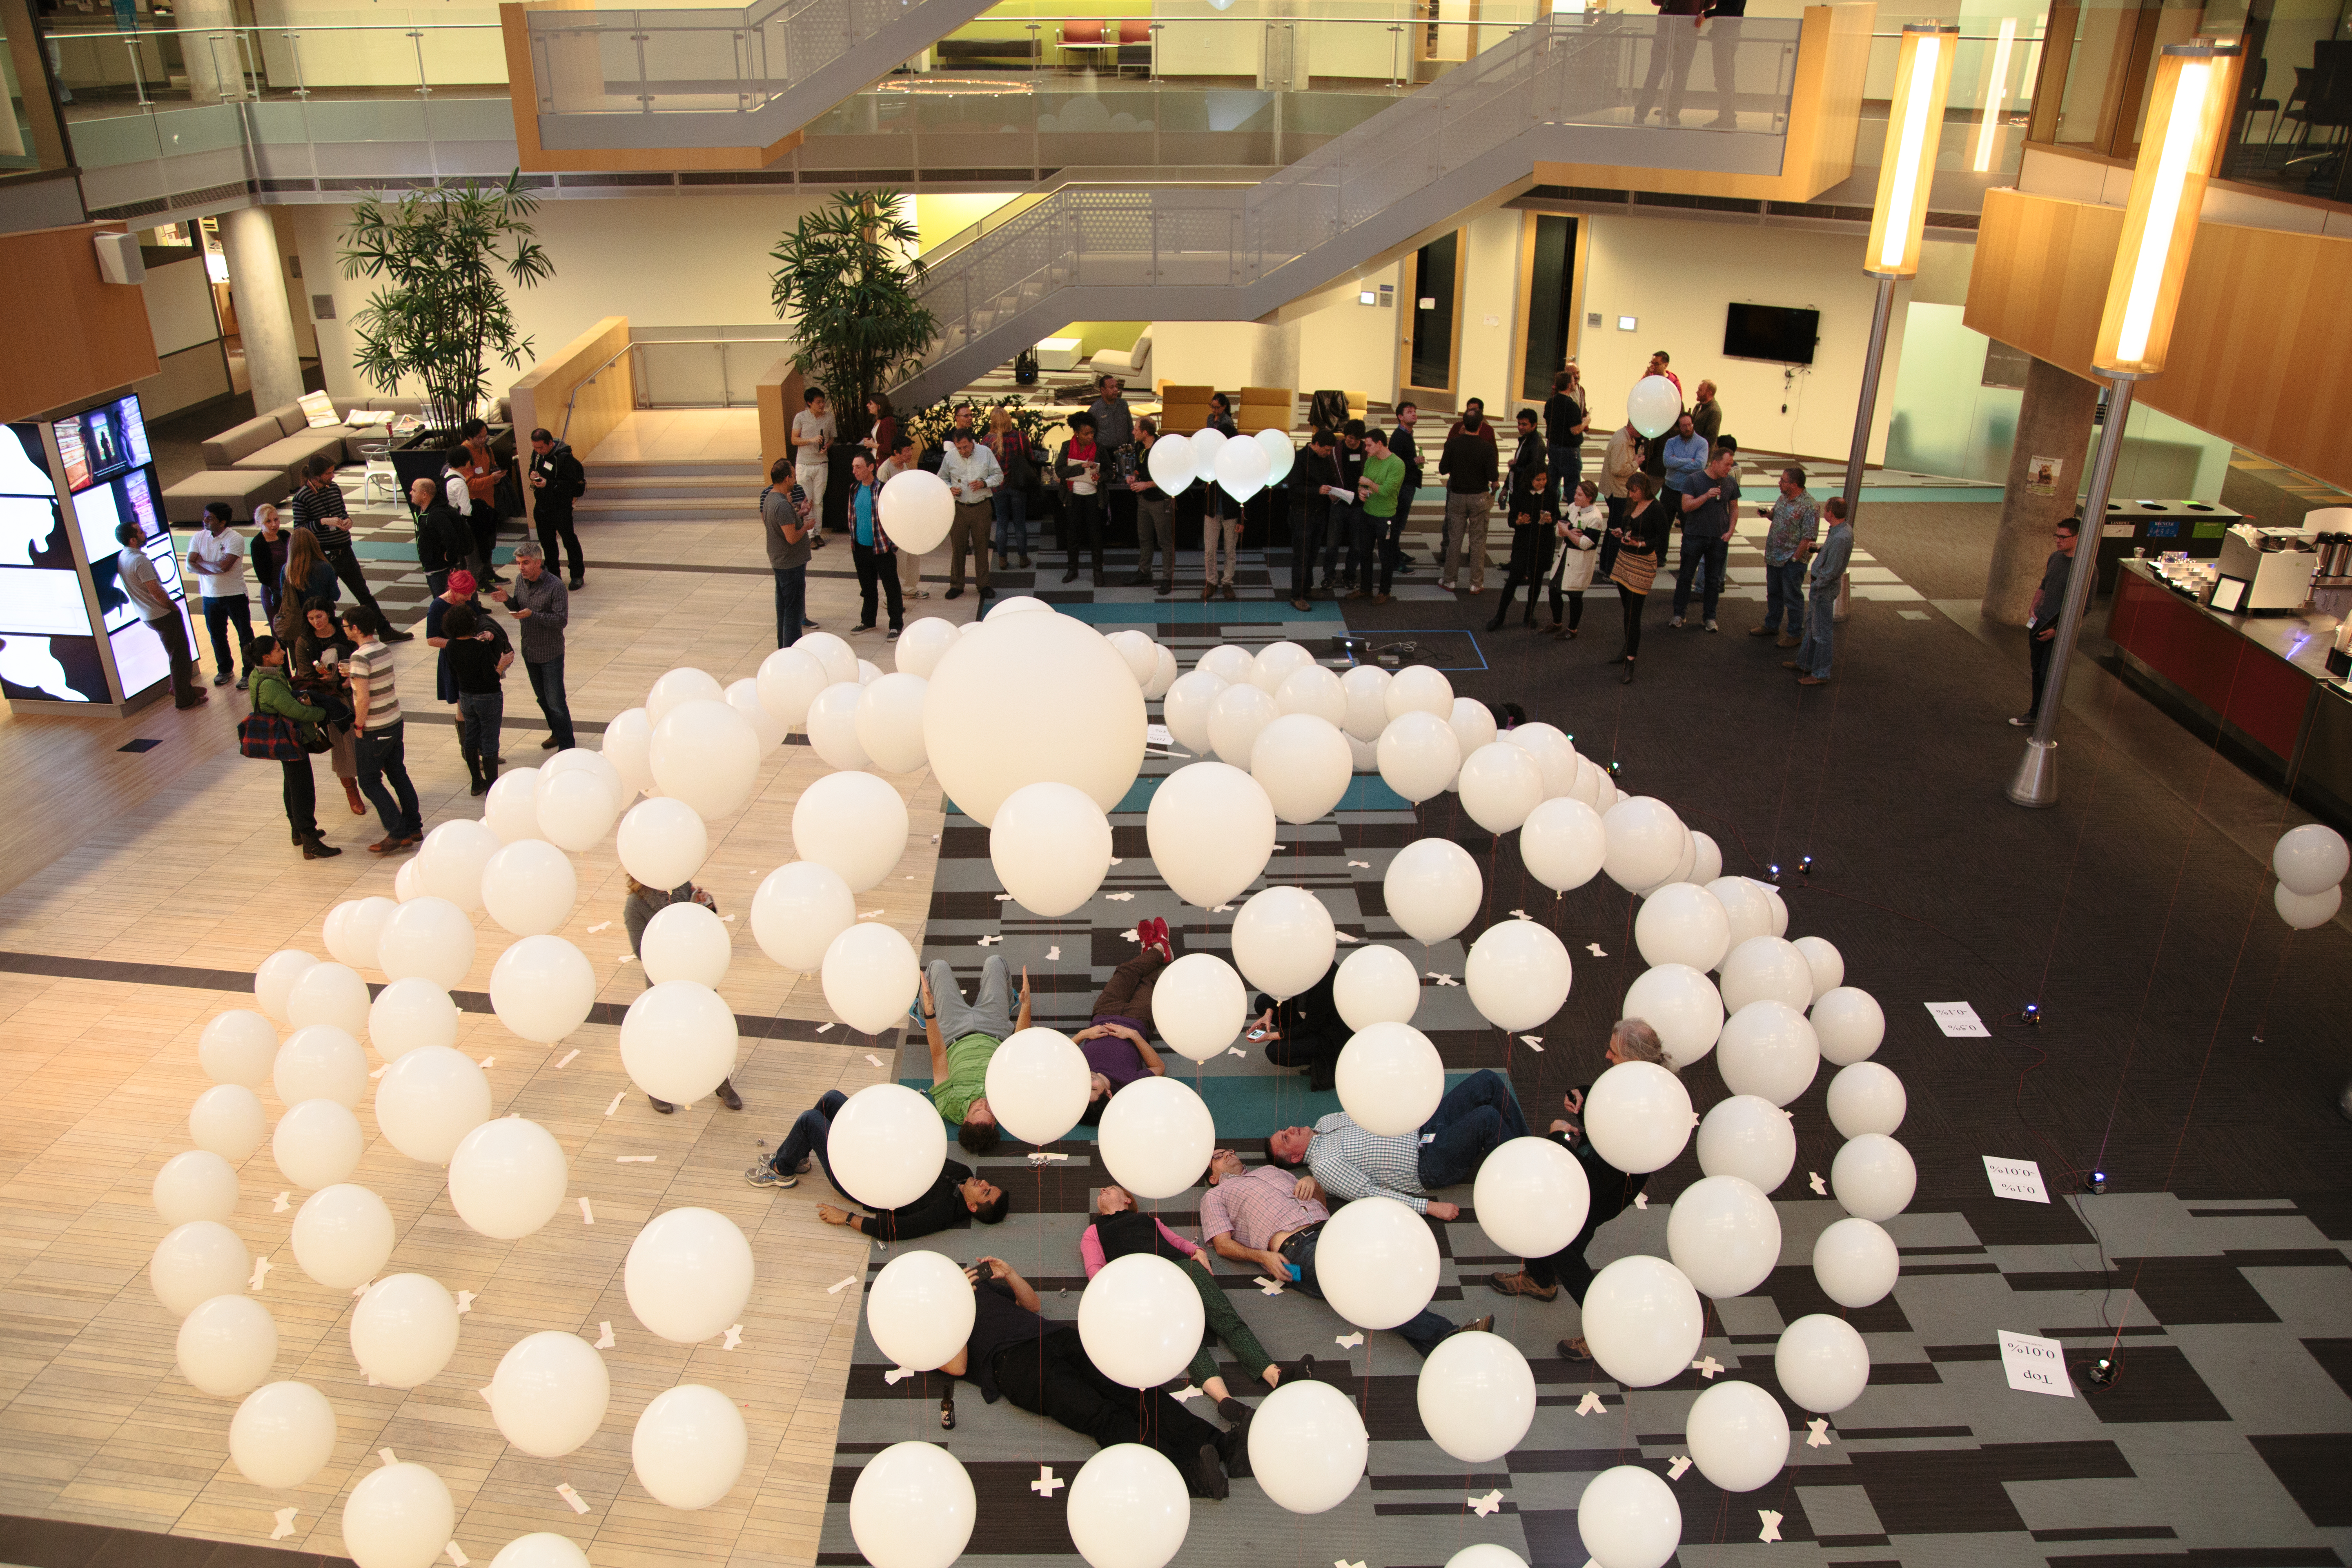 Disparity installation overview with balloons